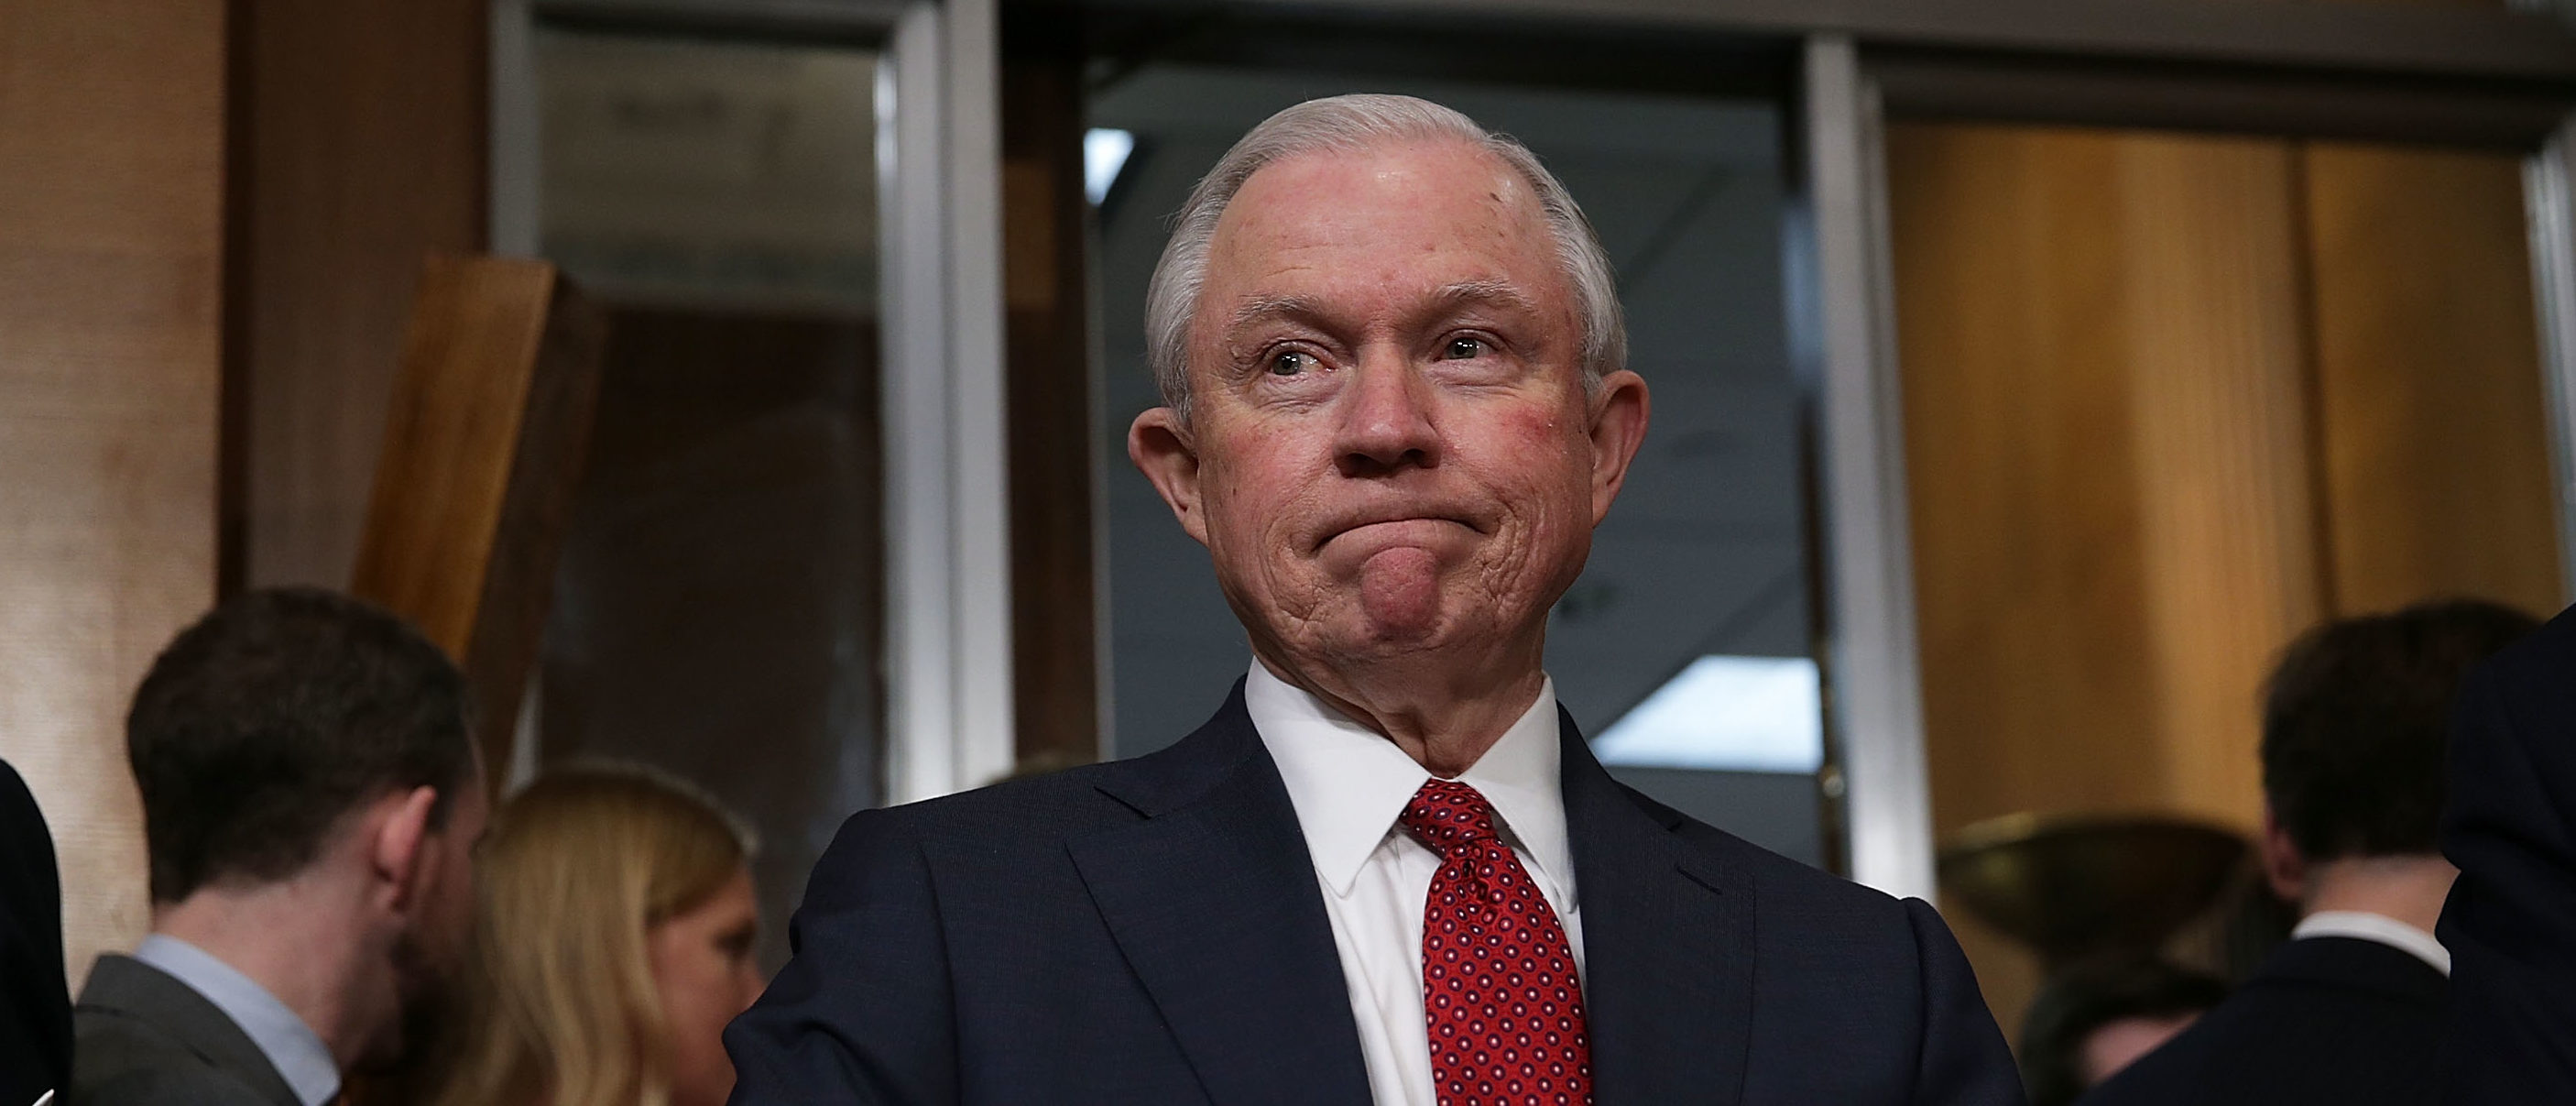 WASHINGTON, DC - FEBRUARY 02: U.S. Sen. Jeff Sessions, a committee member, waits for the beginning of a meeting of Senate Environment and Public Works Committee February 2, 2017 on Capitol Hill in Washington, DC. Committee chairman Sen. John Barrasso (R-WY) suspended the rules and passed the confirm of Oklahoma Attorney General Scott Pruitt to become the next administrator of Environmental Protection Agency with only Republican votes, after Democratic members have boycotted the meeting for a second day. The confirmation will need to be voted on later by the full Senate. (Photo by Alex Wong/Getty Images)